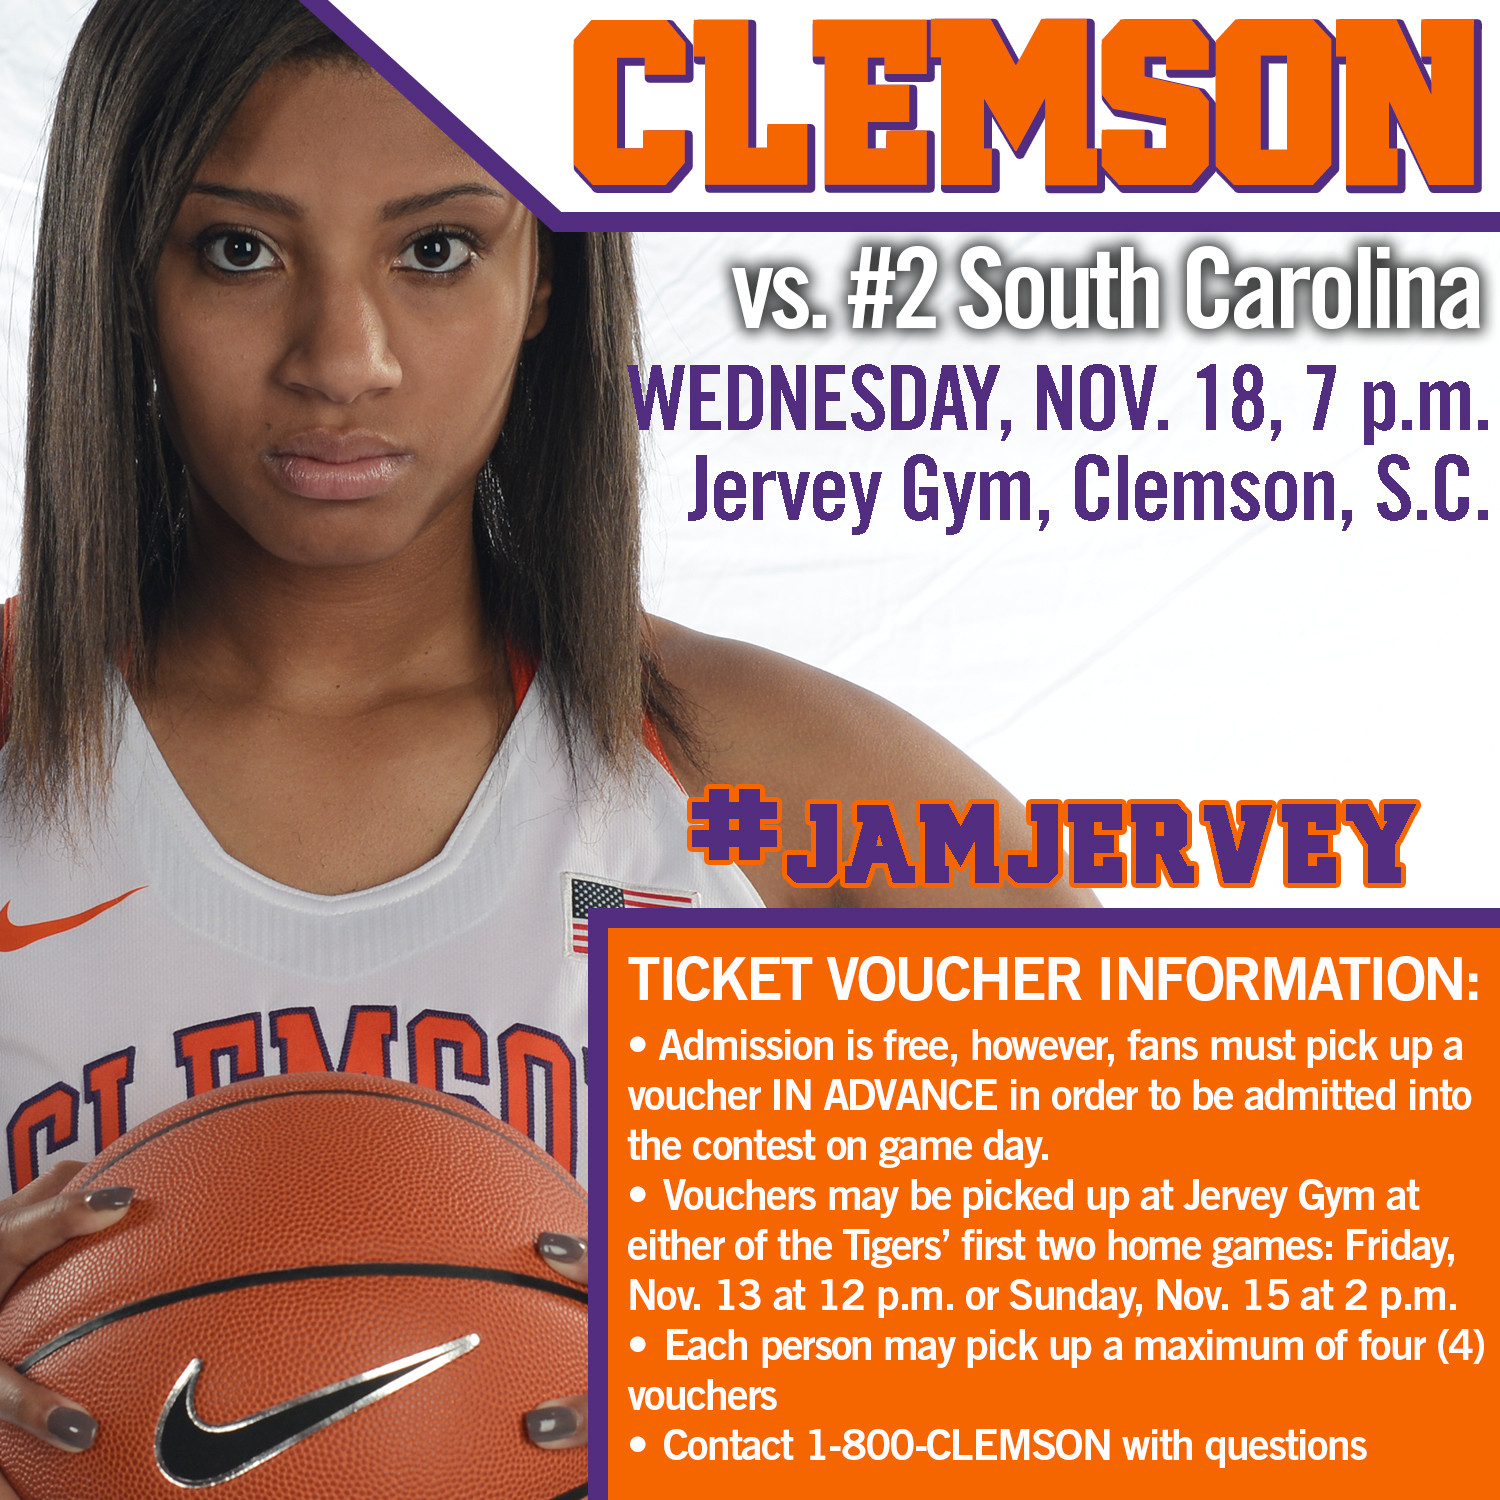 Details Announced for Clemson vs. South Carolina Ticket Voucher Plan